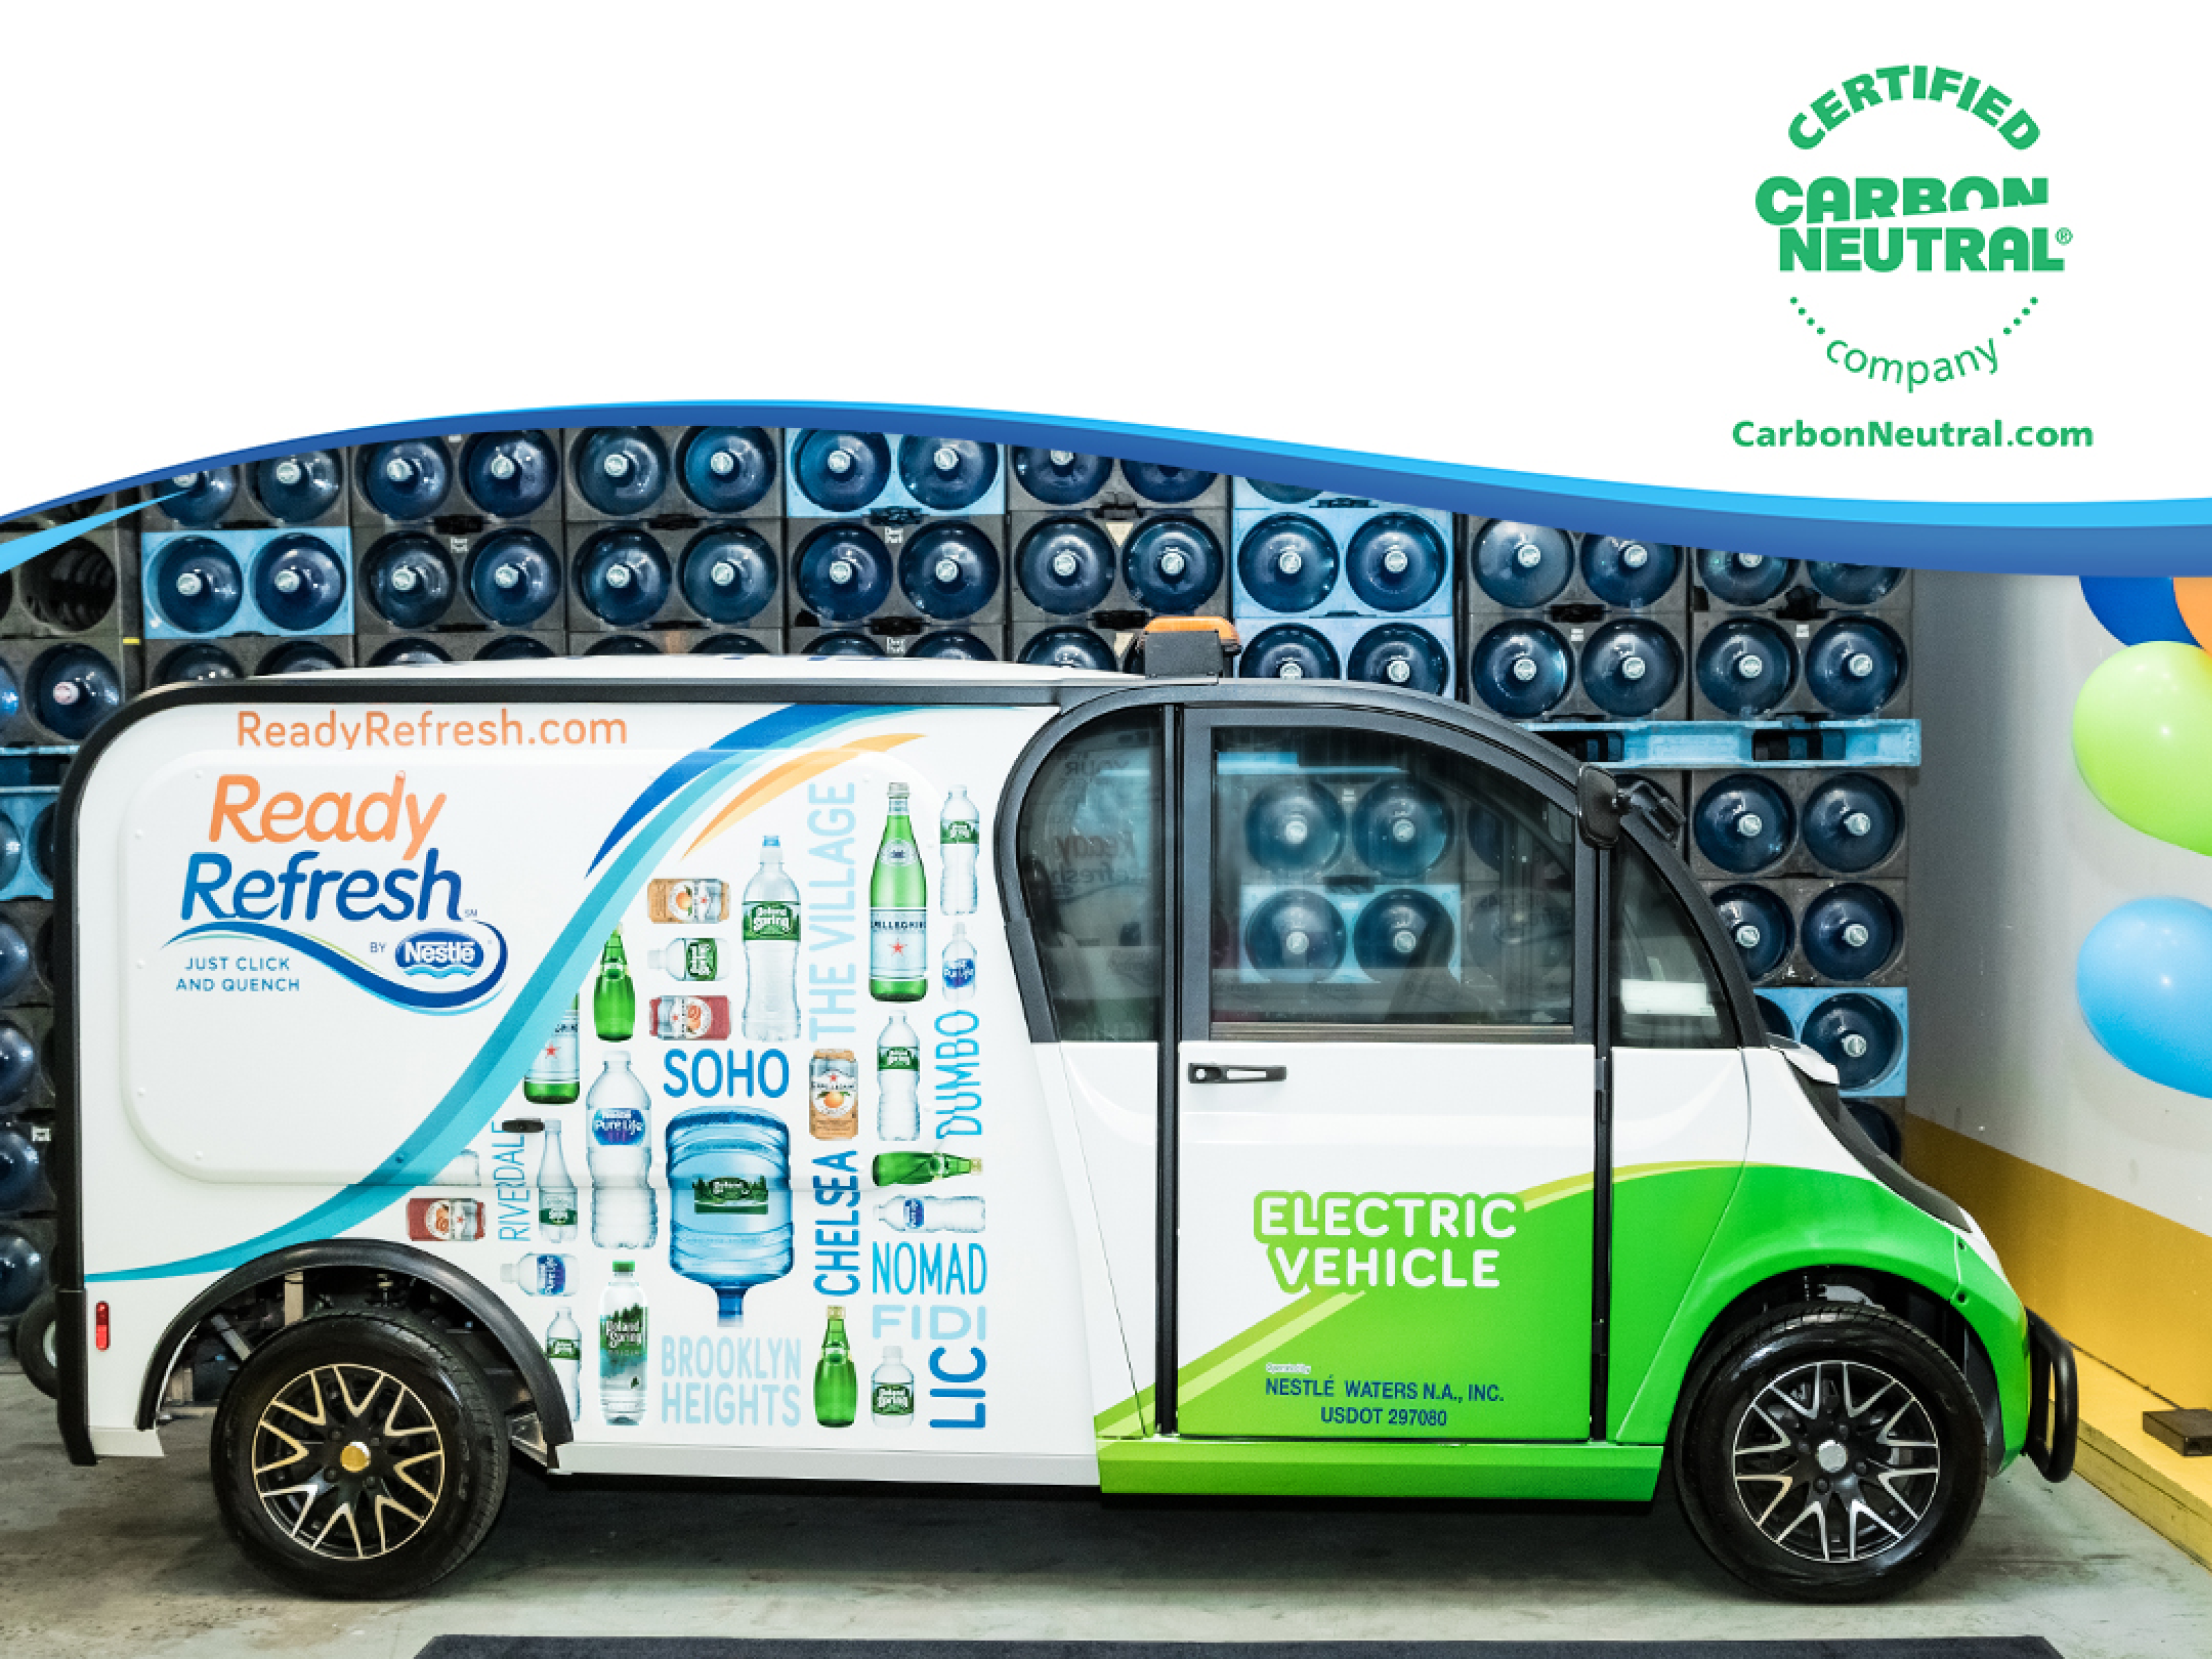 Nestlé Waters North America beverage delivery arm reaches carbon neutrality